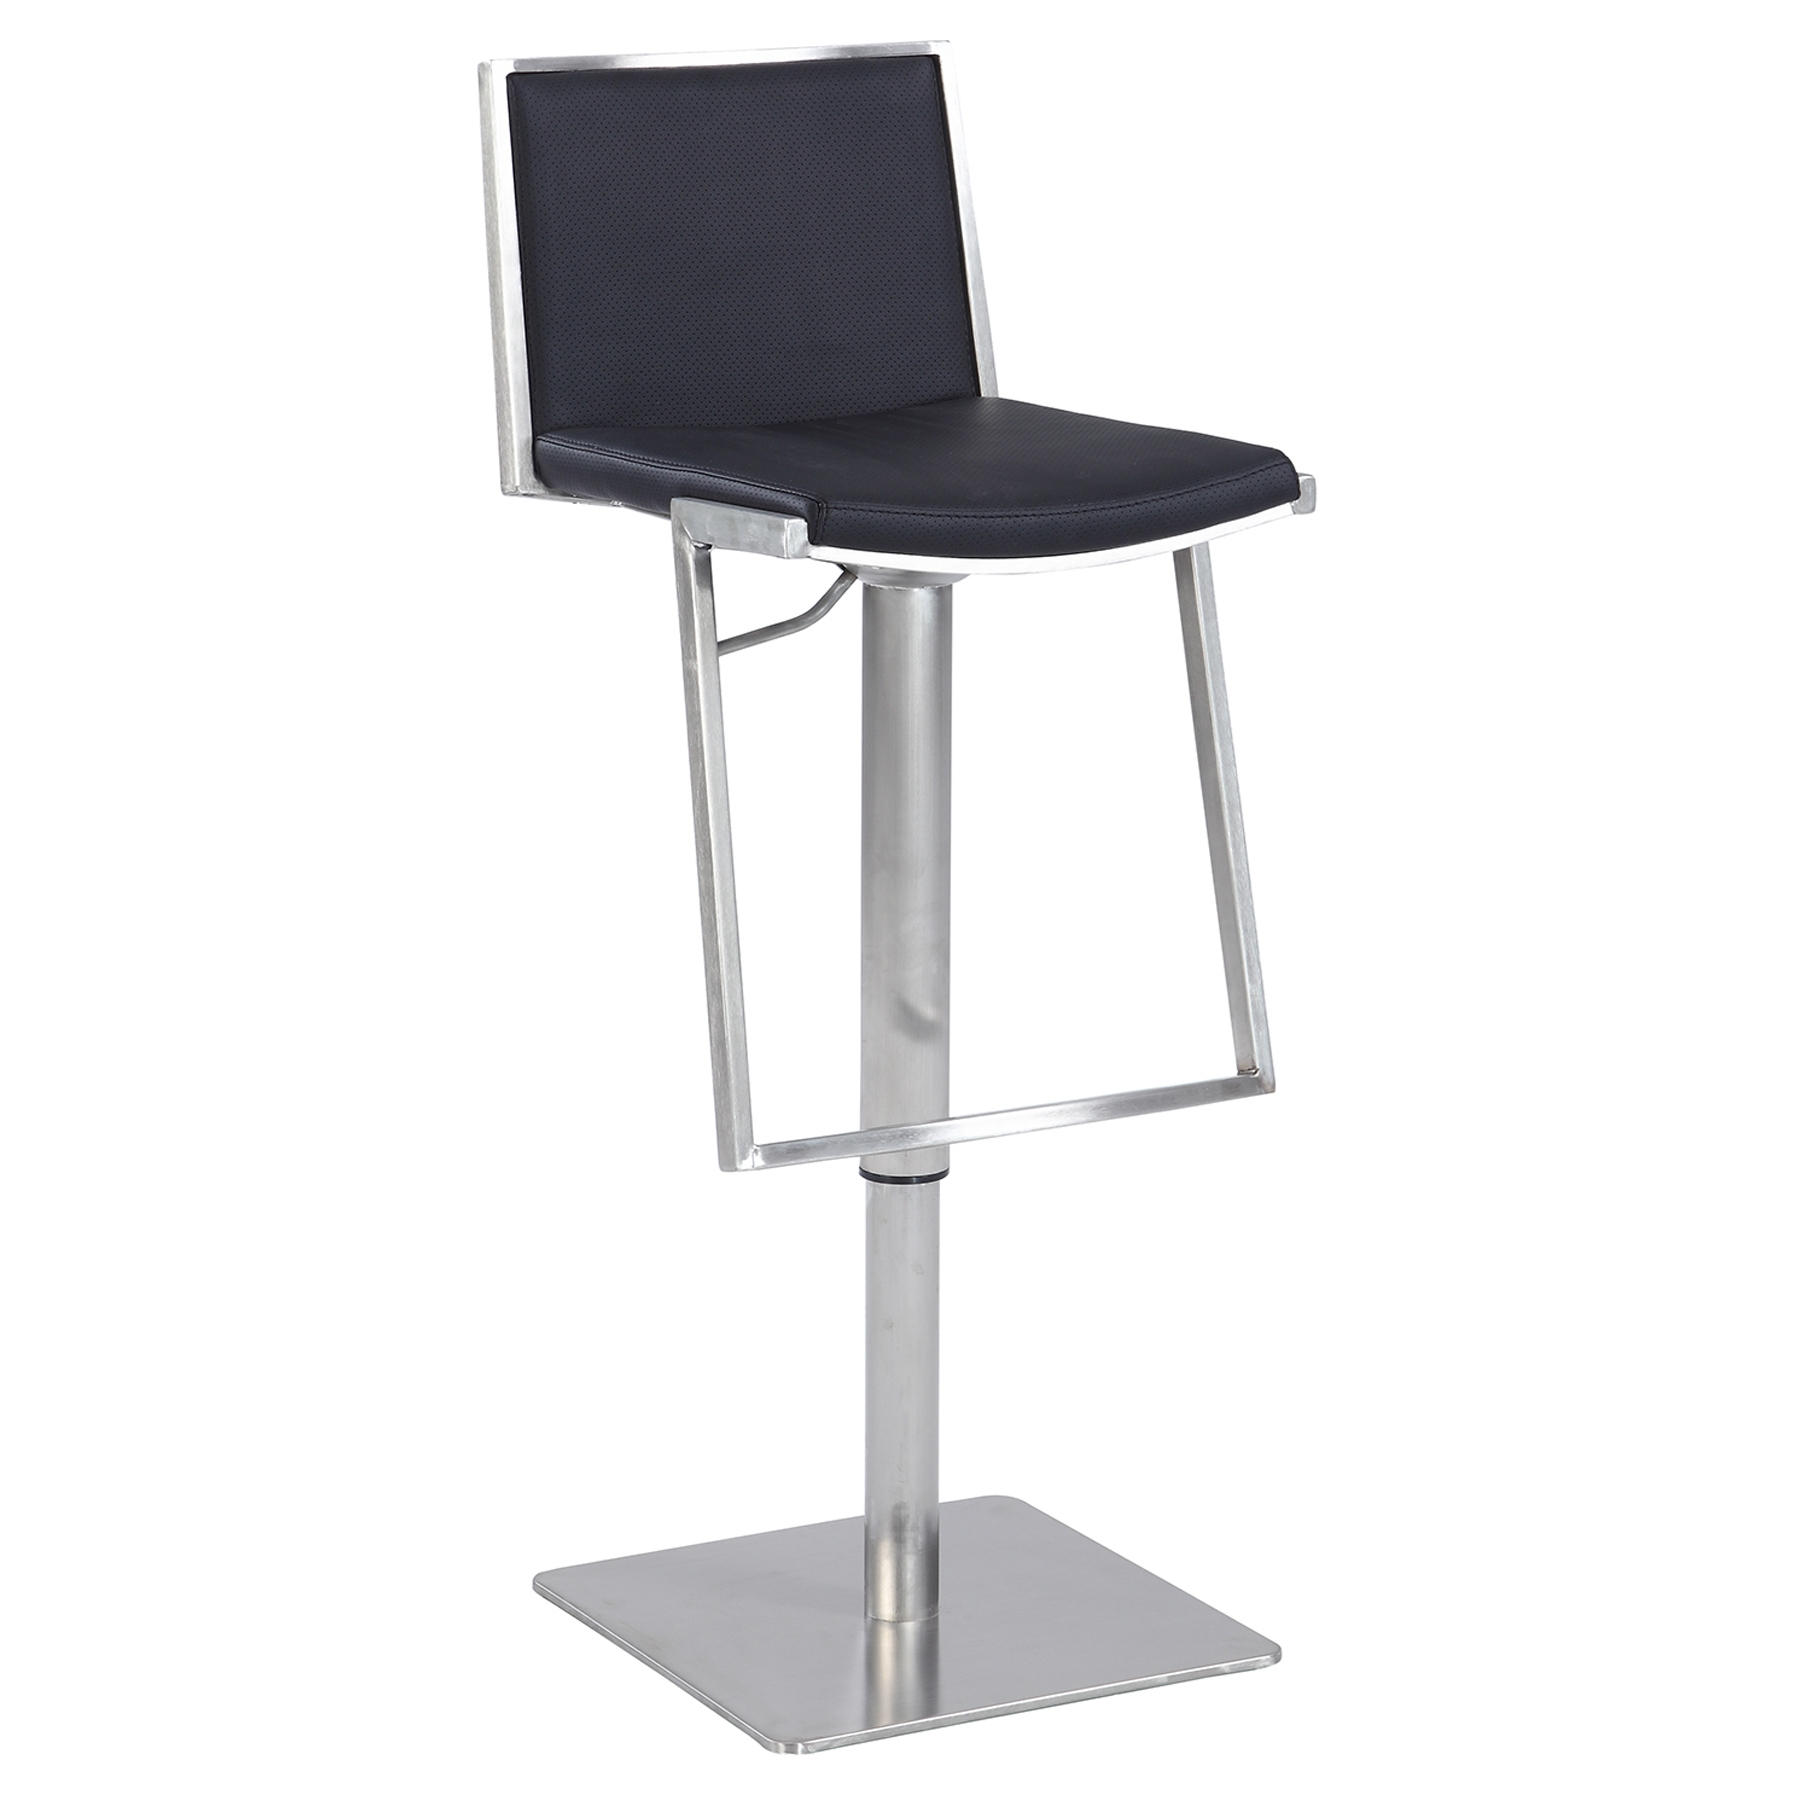 Pneumatic Stool Black Leatherette Brushed Stainless  : 0894 as blk from www.dcgstores.com size 1000 x 1000 jpeg 143kB